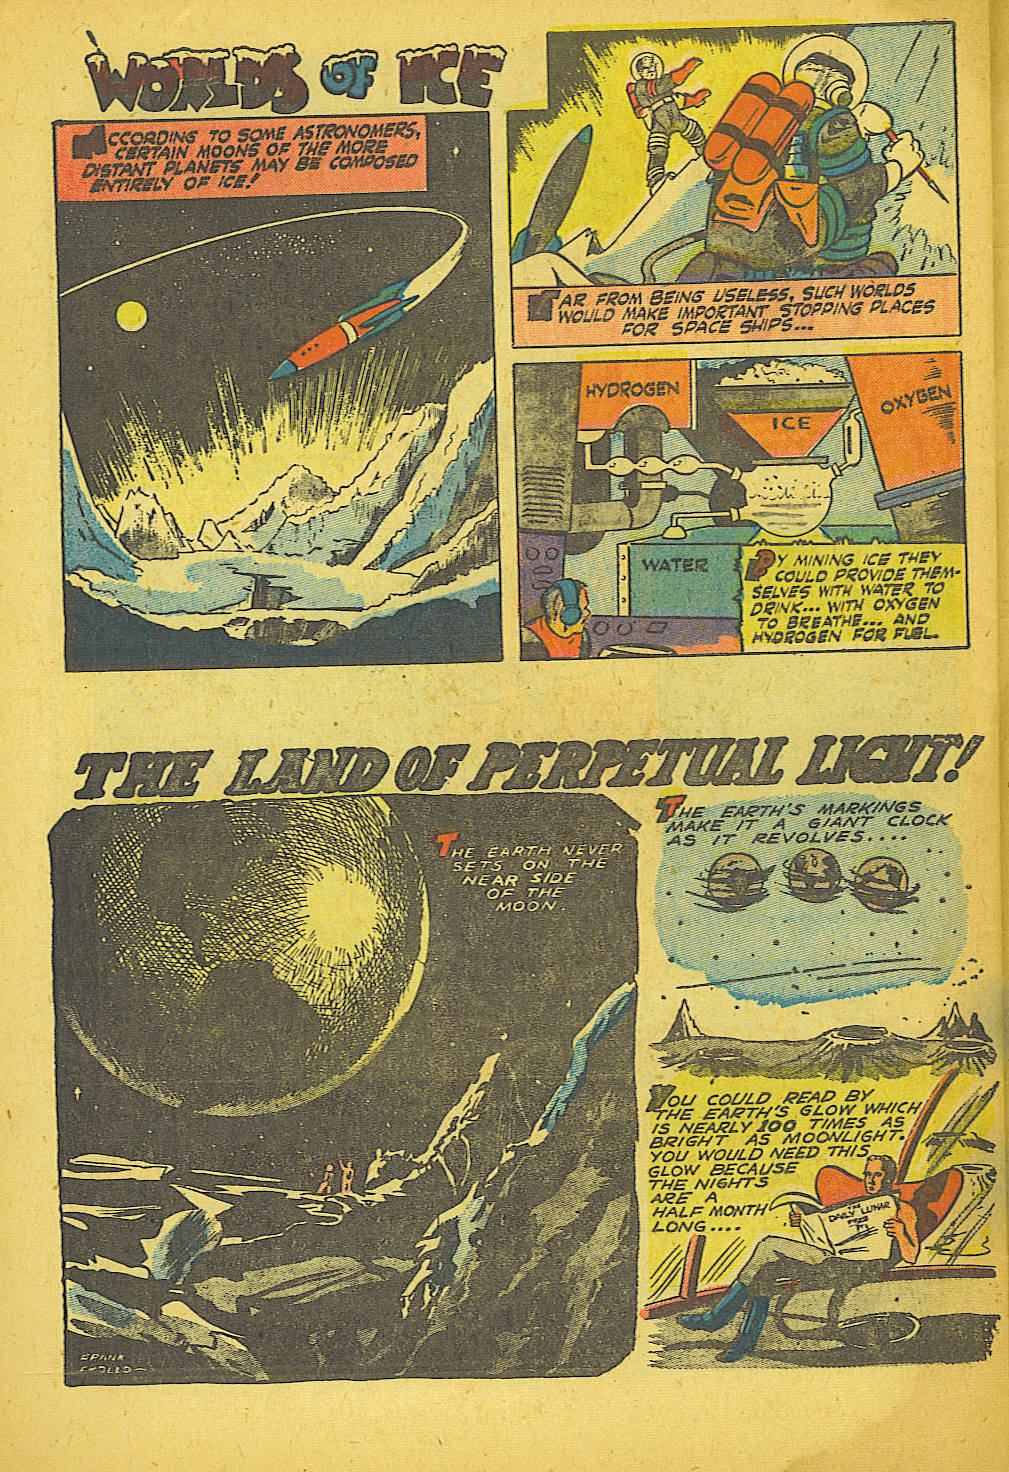 Read online Space Adventures comic -  Issue #16 - 25